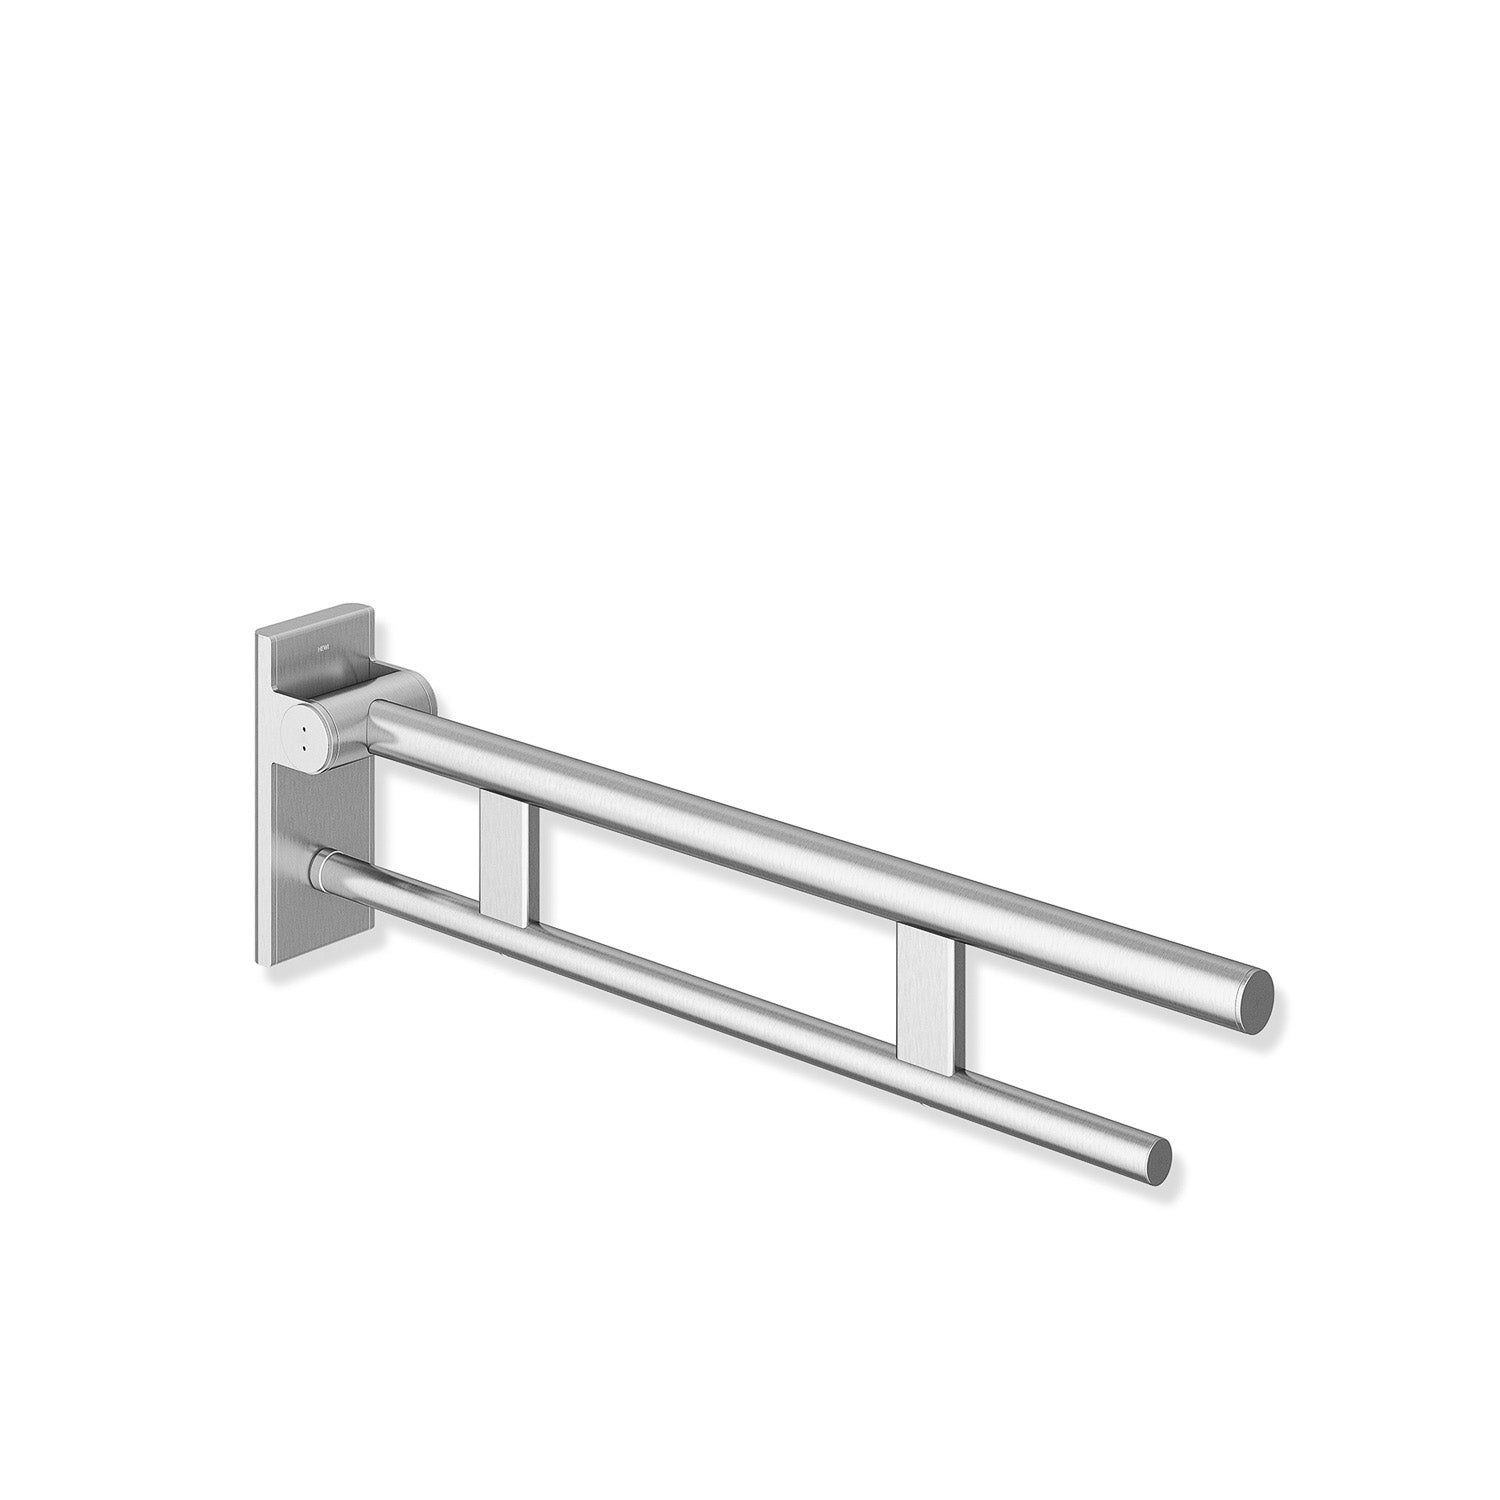 850mm Freestyle Removable Hinged Grab Rail with a satin steel finish on a white background